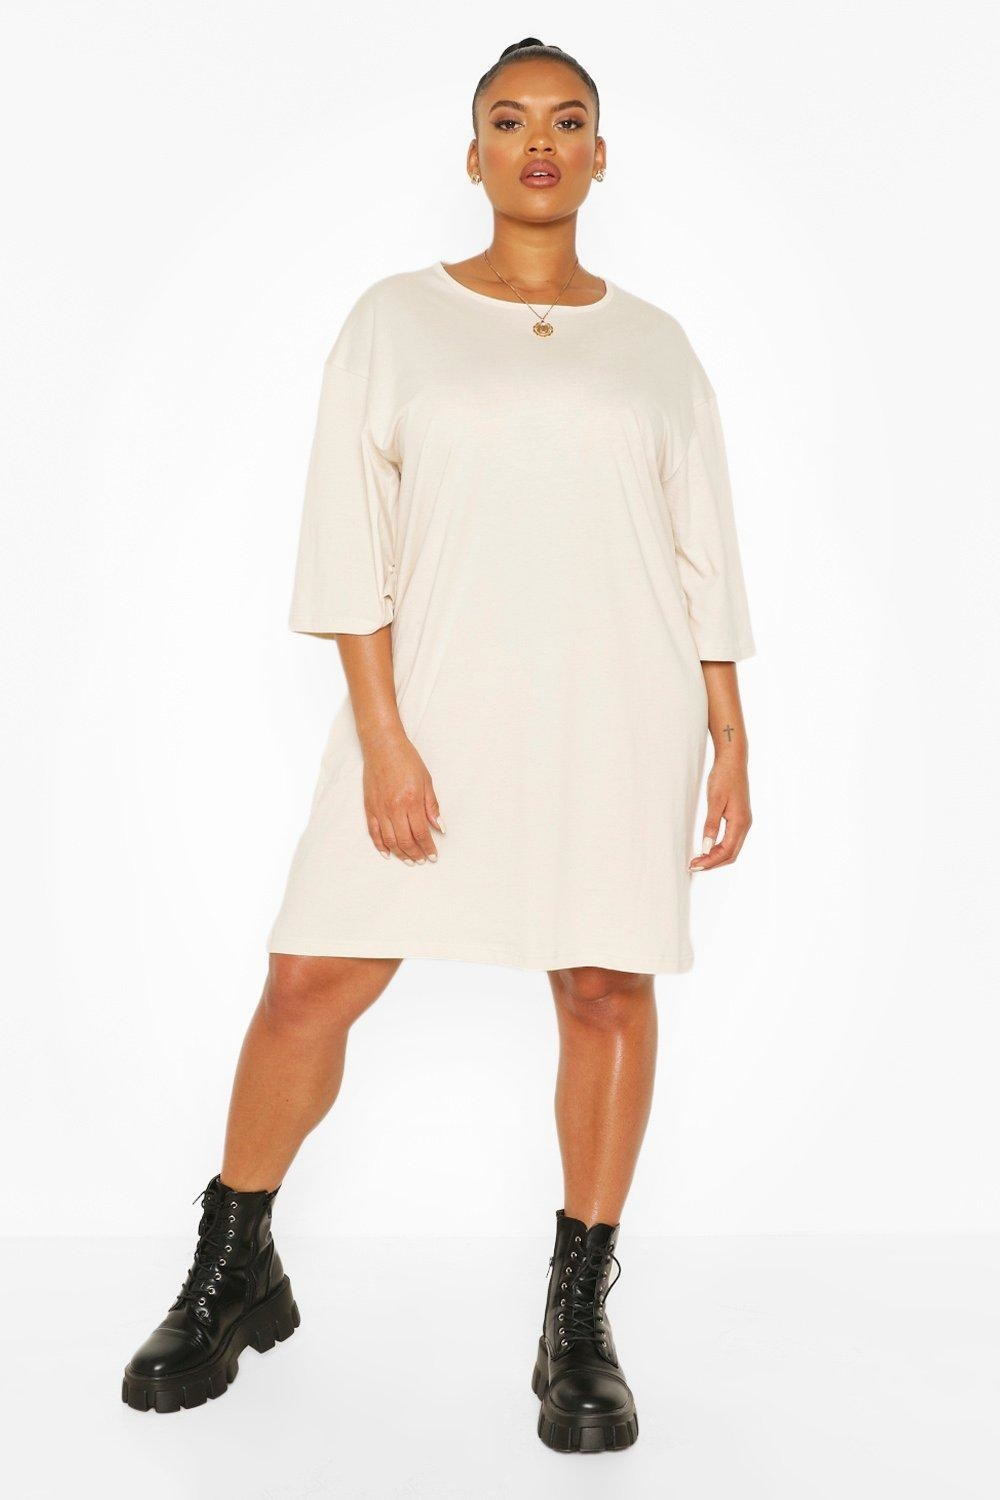 A model wearing the cream-colored T-shirt dress that goes to her knees